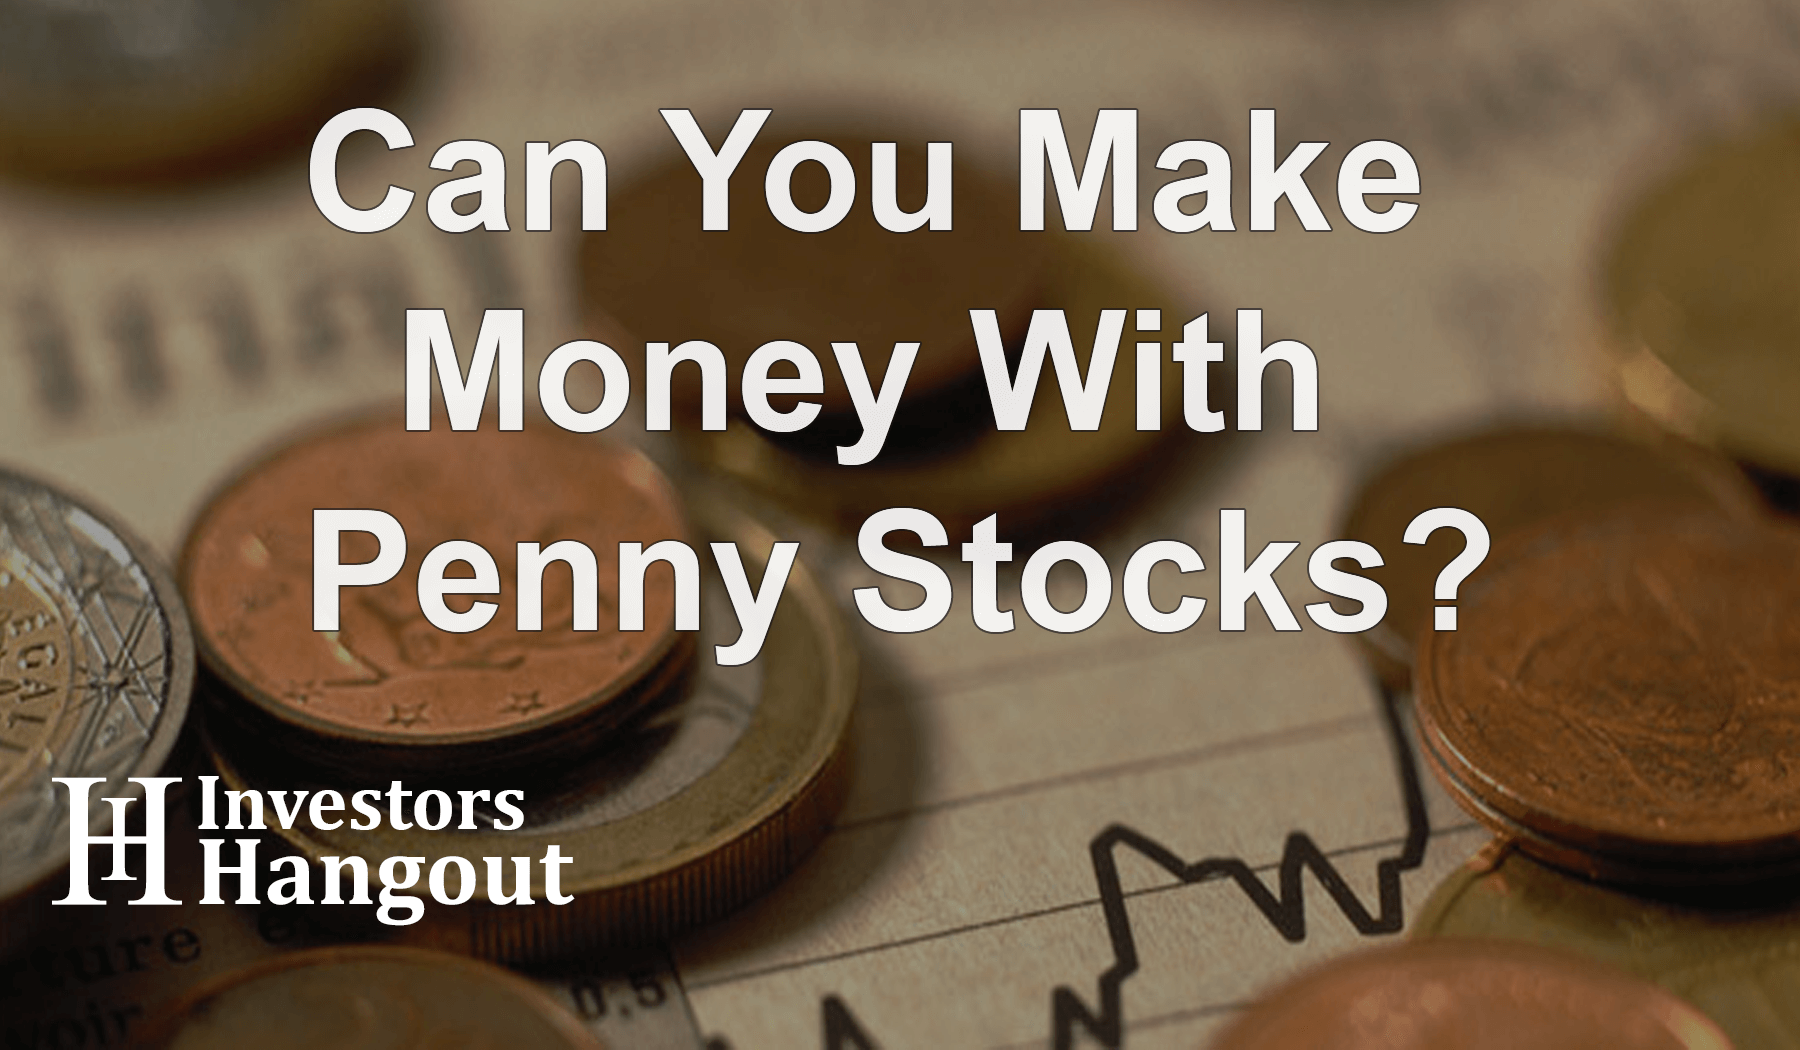 Can You Make Money with Penny Stocks?